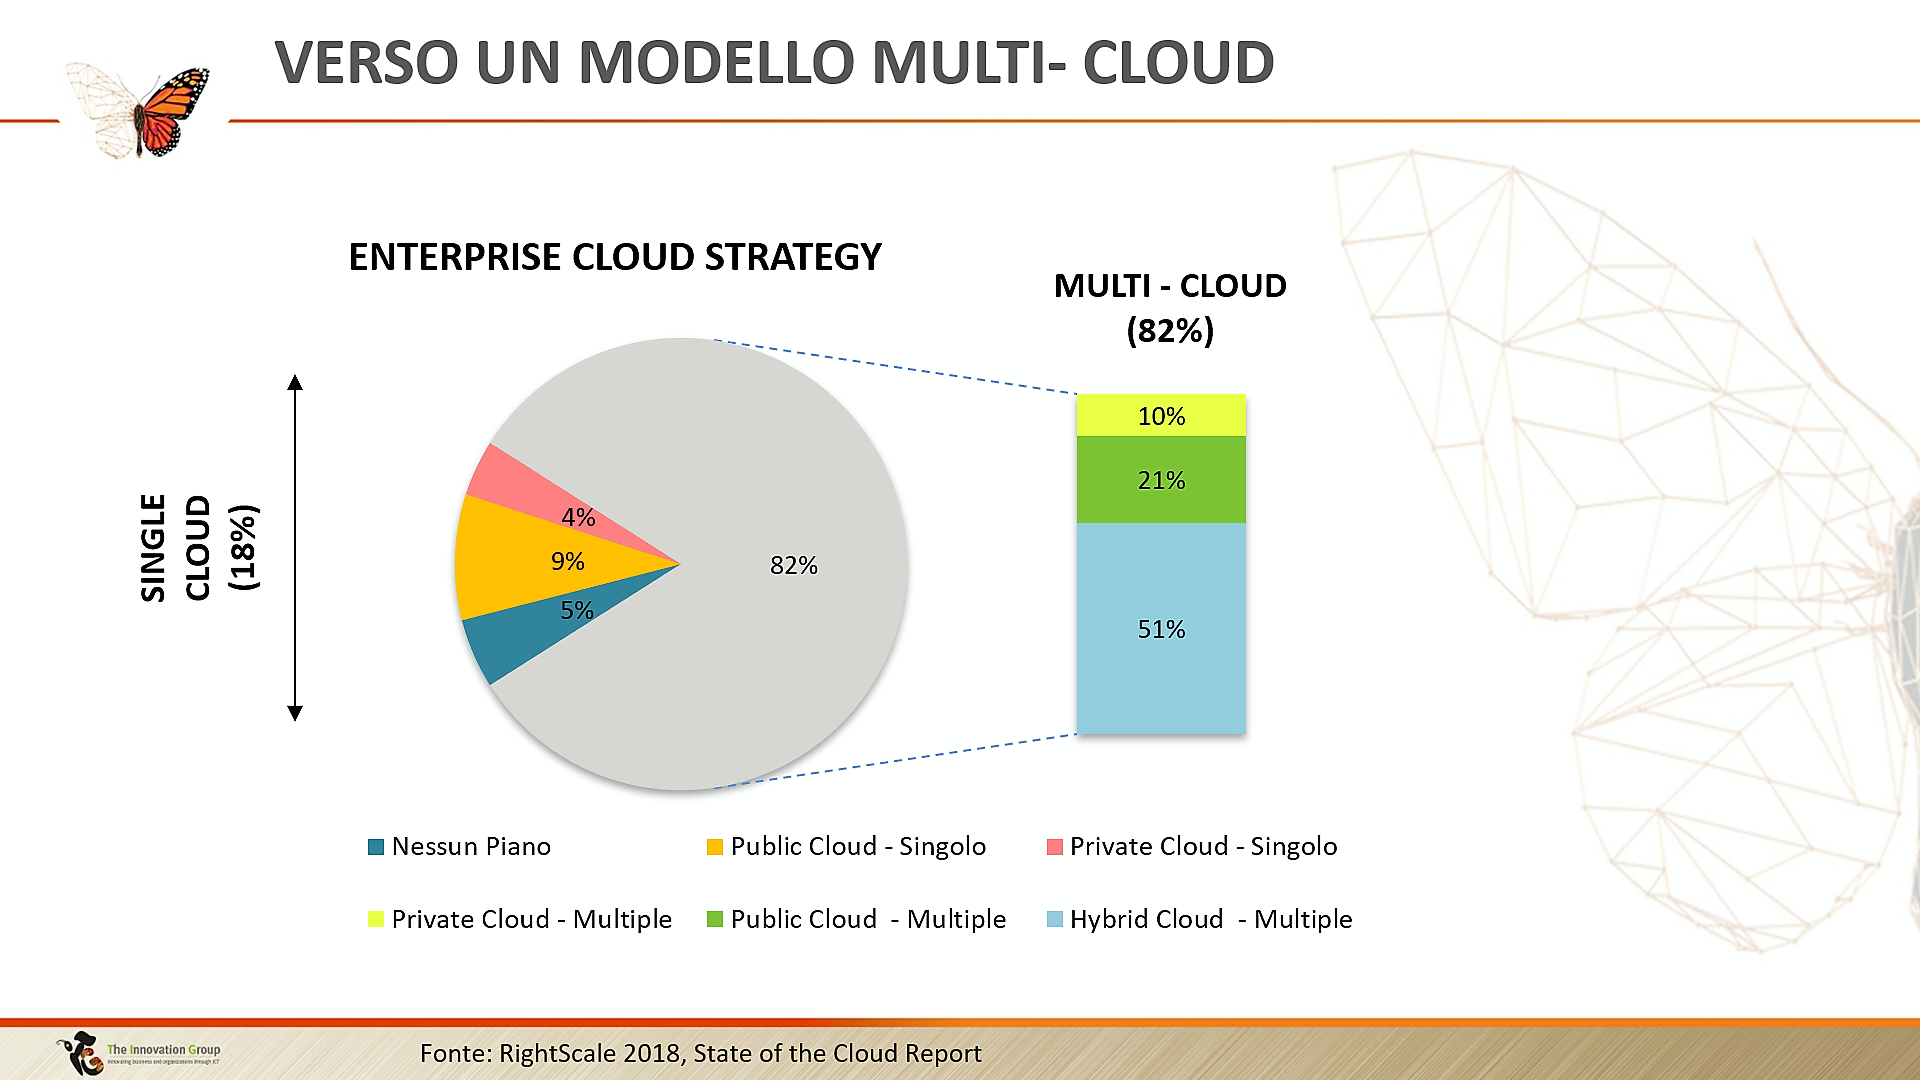 Rischi e benefici di una strategia Multi-Cloud